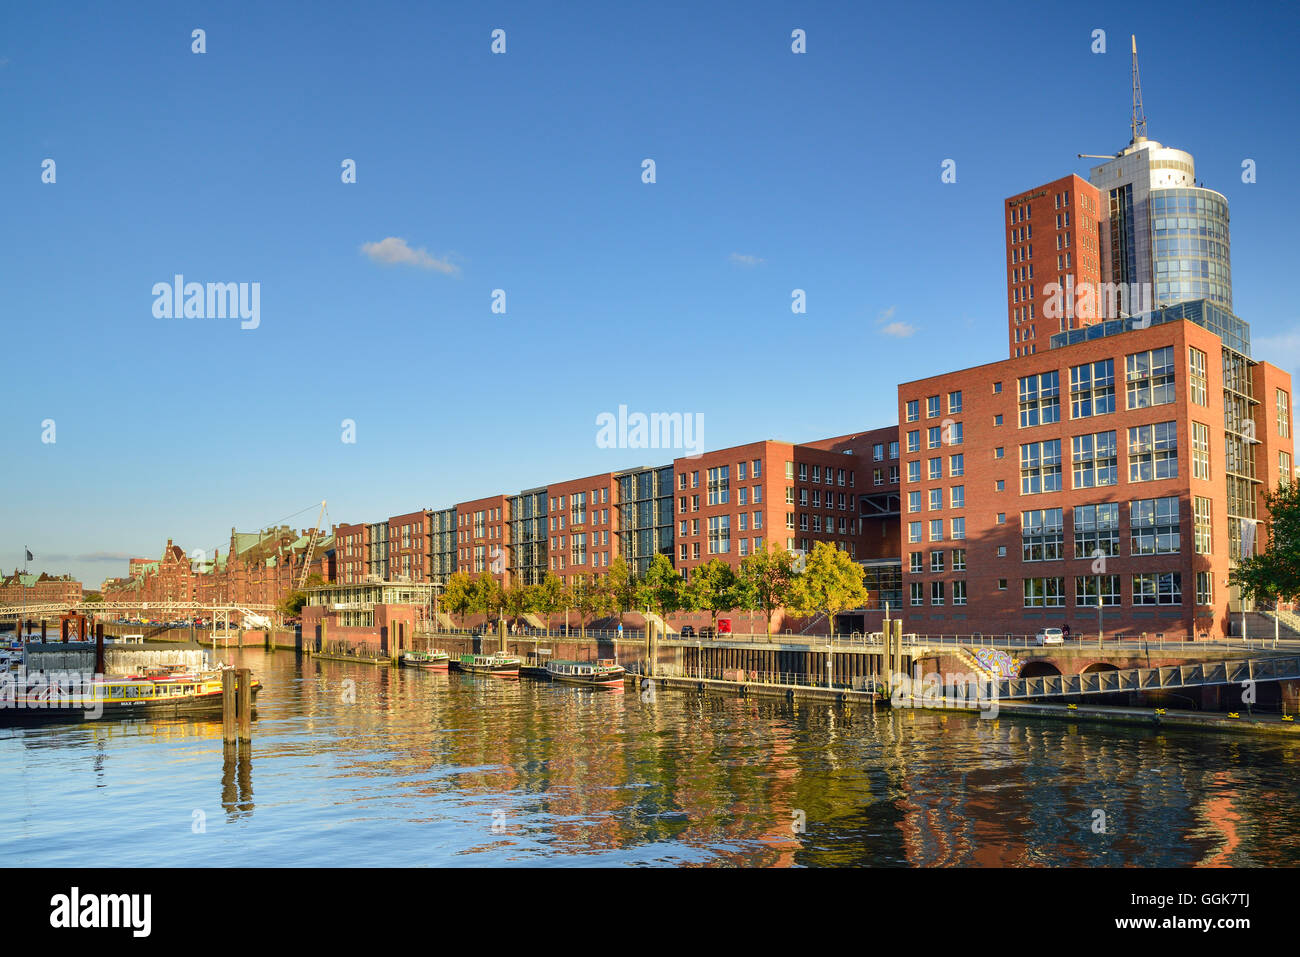 Inland port with old and modern buildings of the old Warehouse district, Warehouse district, Speicherstadt, Hamburg, - Stock Image